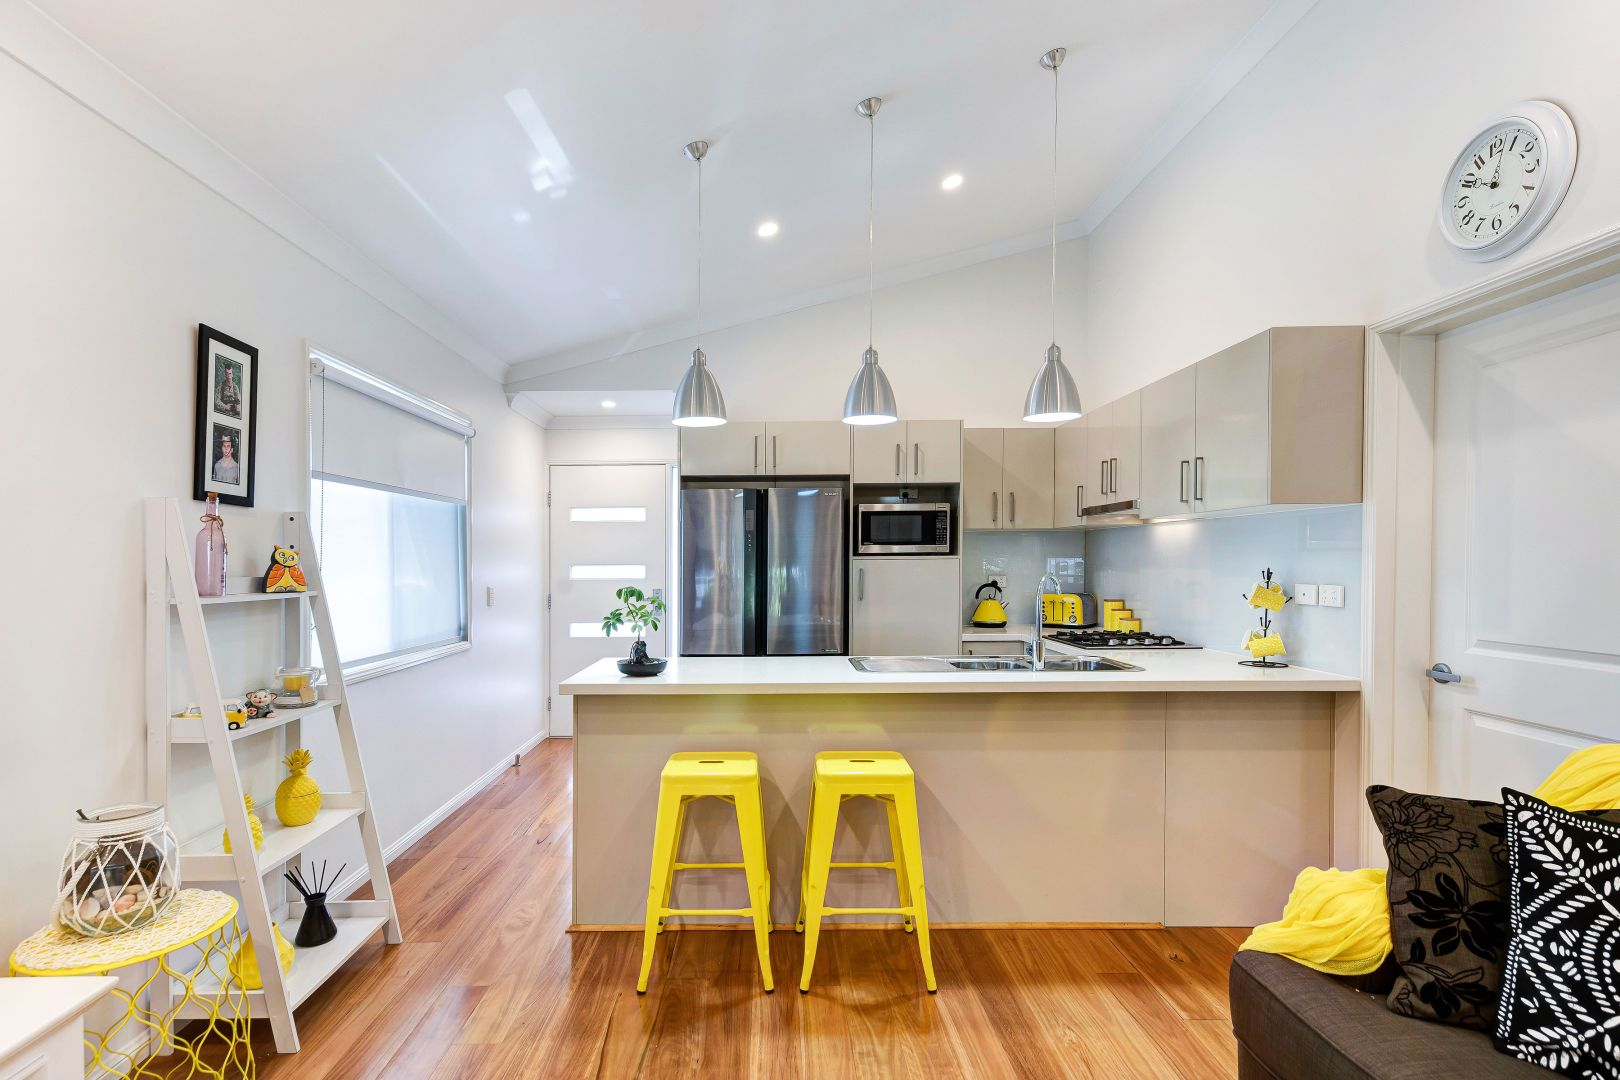 OpenAgent Article Image - 7 stunning beach houses for sale in Australia for under $500k